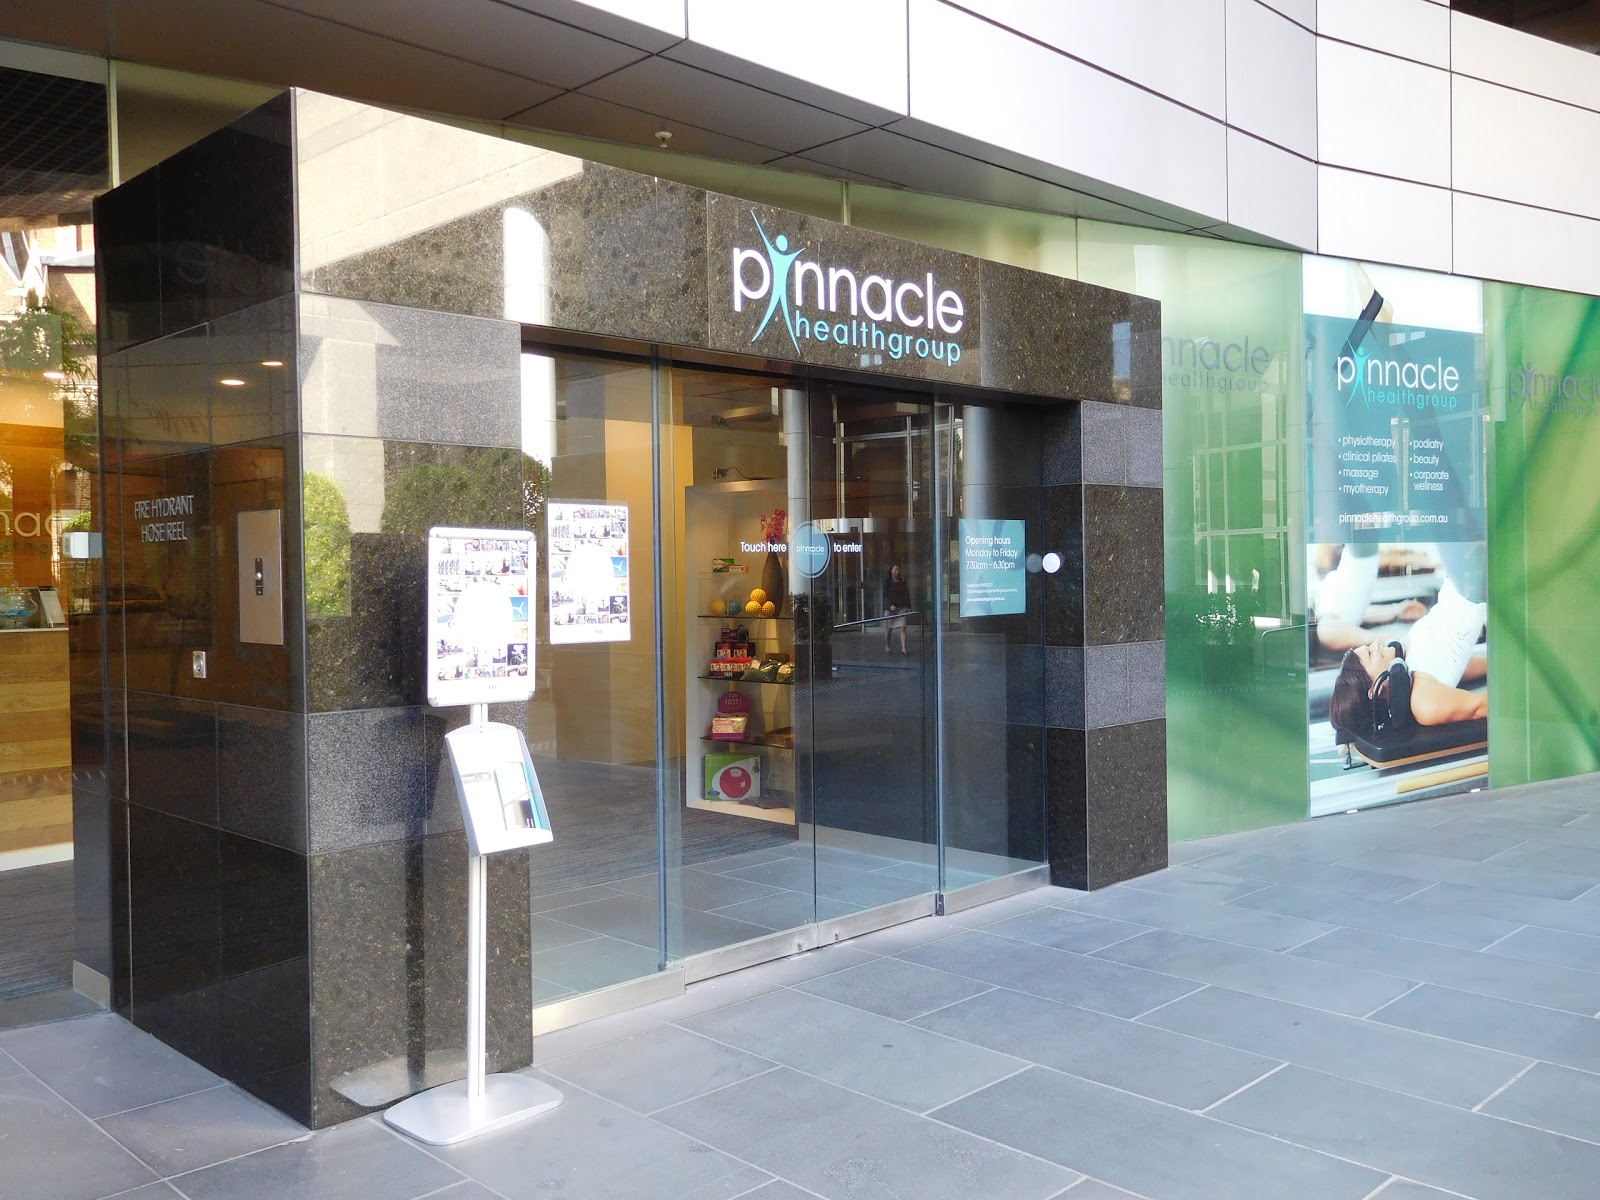 Pinnacle Health Group - Collins St - photo